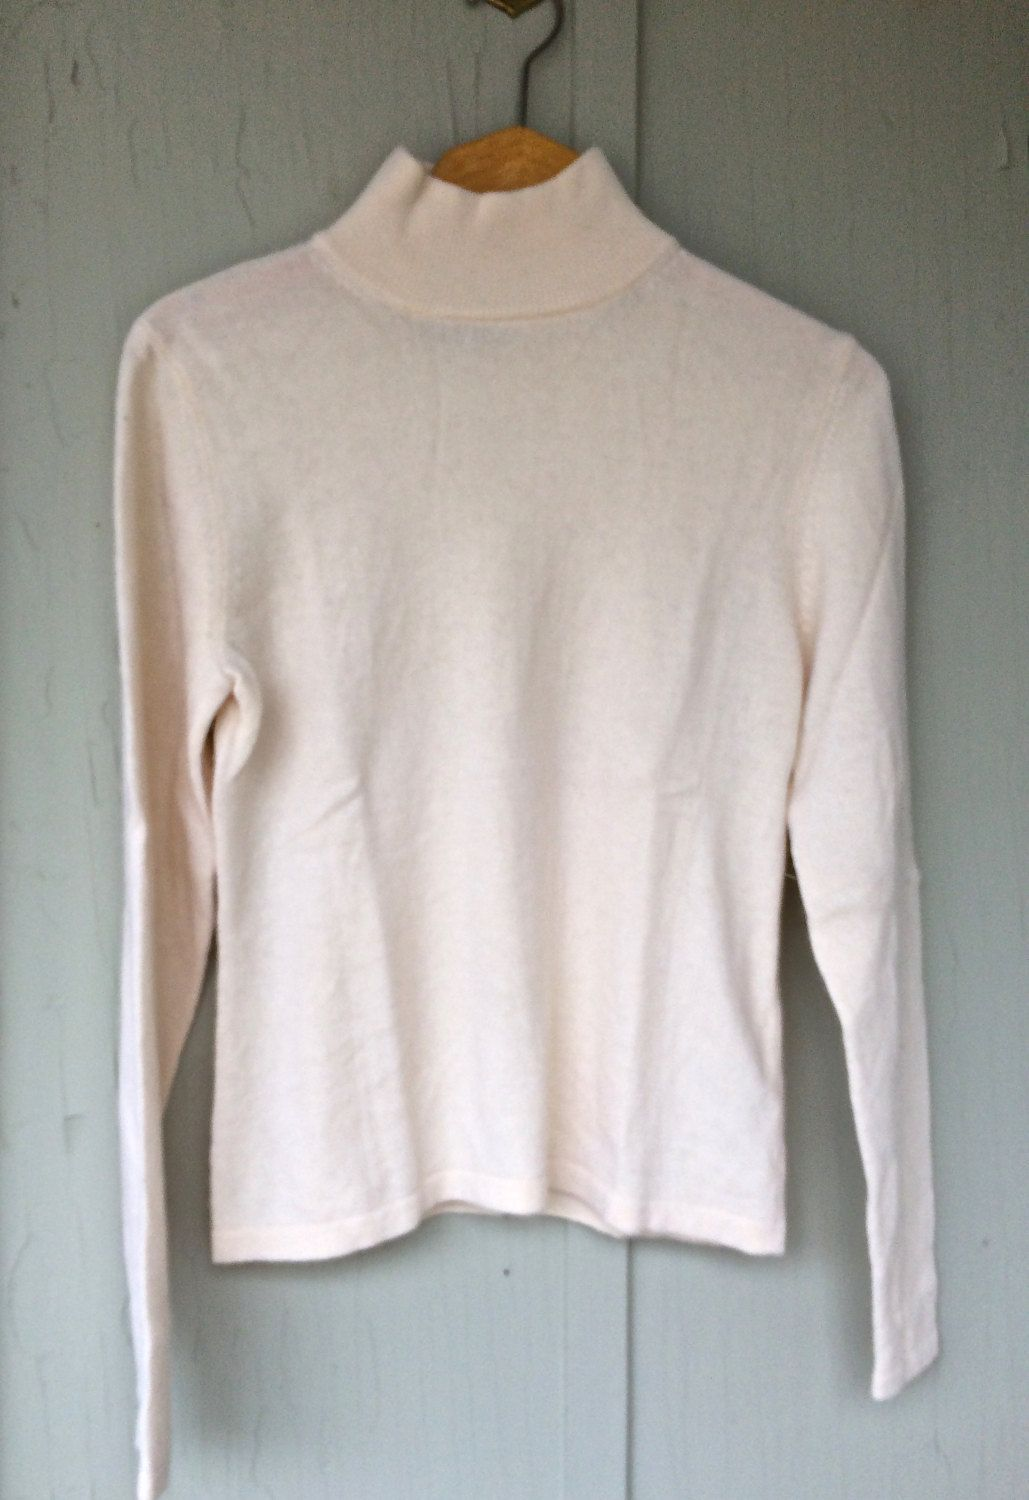 Soft warm winter white mock turtleneck cashmere sweater, vintage ...